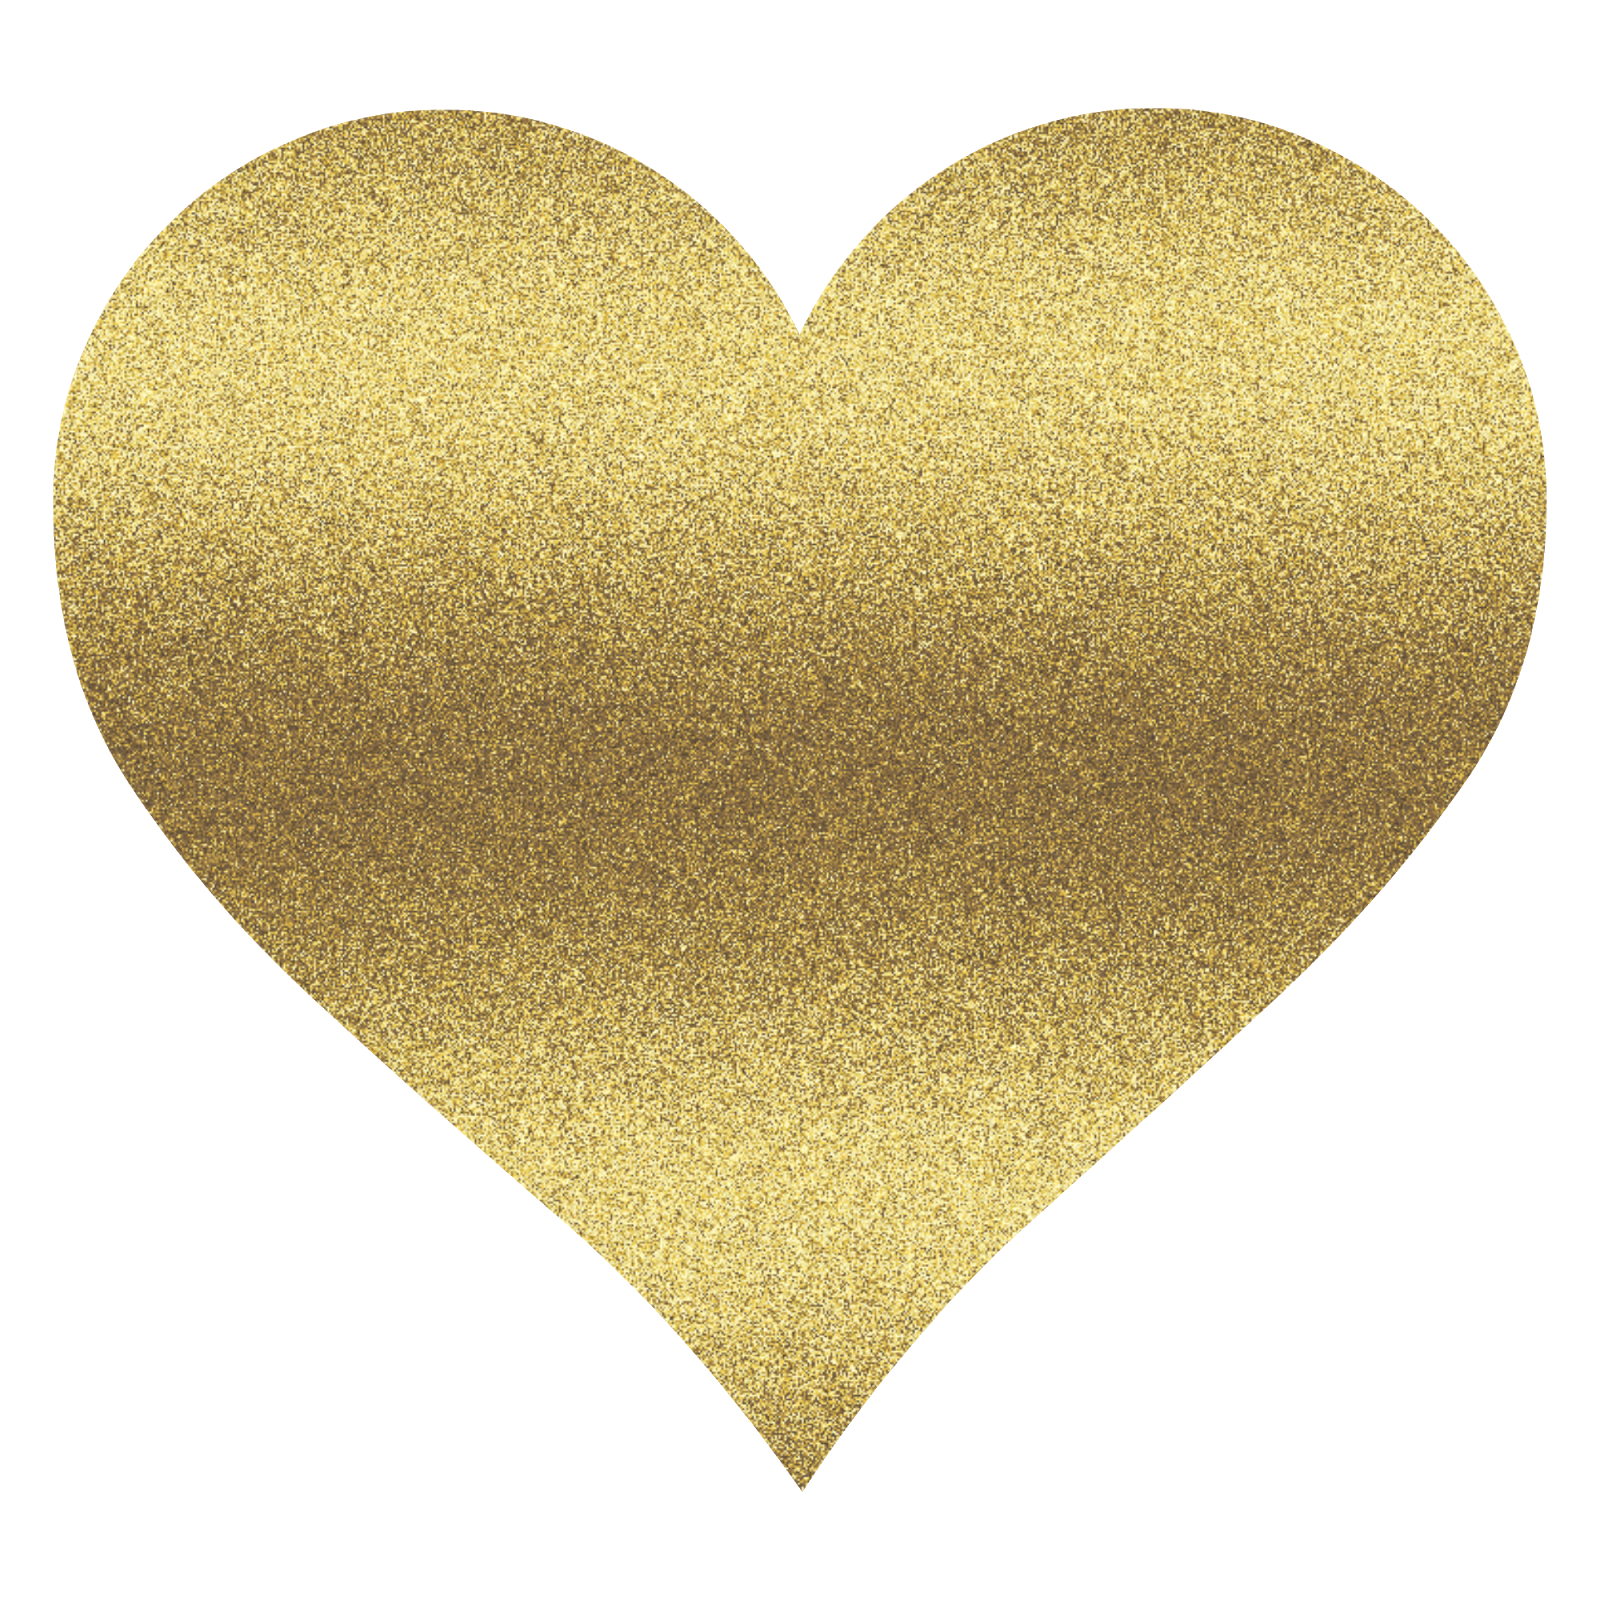 Glitter basketball clipart png library stock gold-heart-glitter - Ronald McDonald House Charities of Maine png library stock